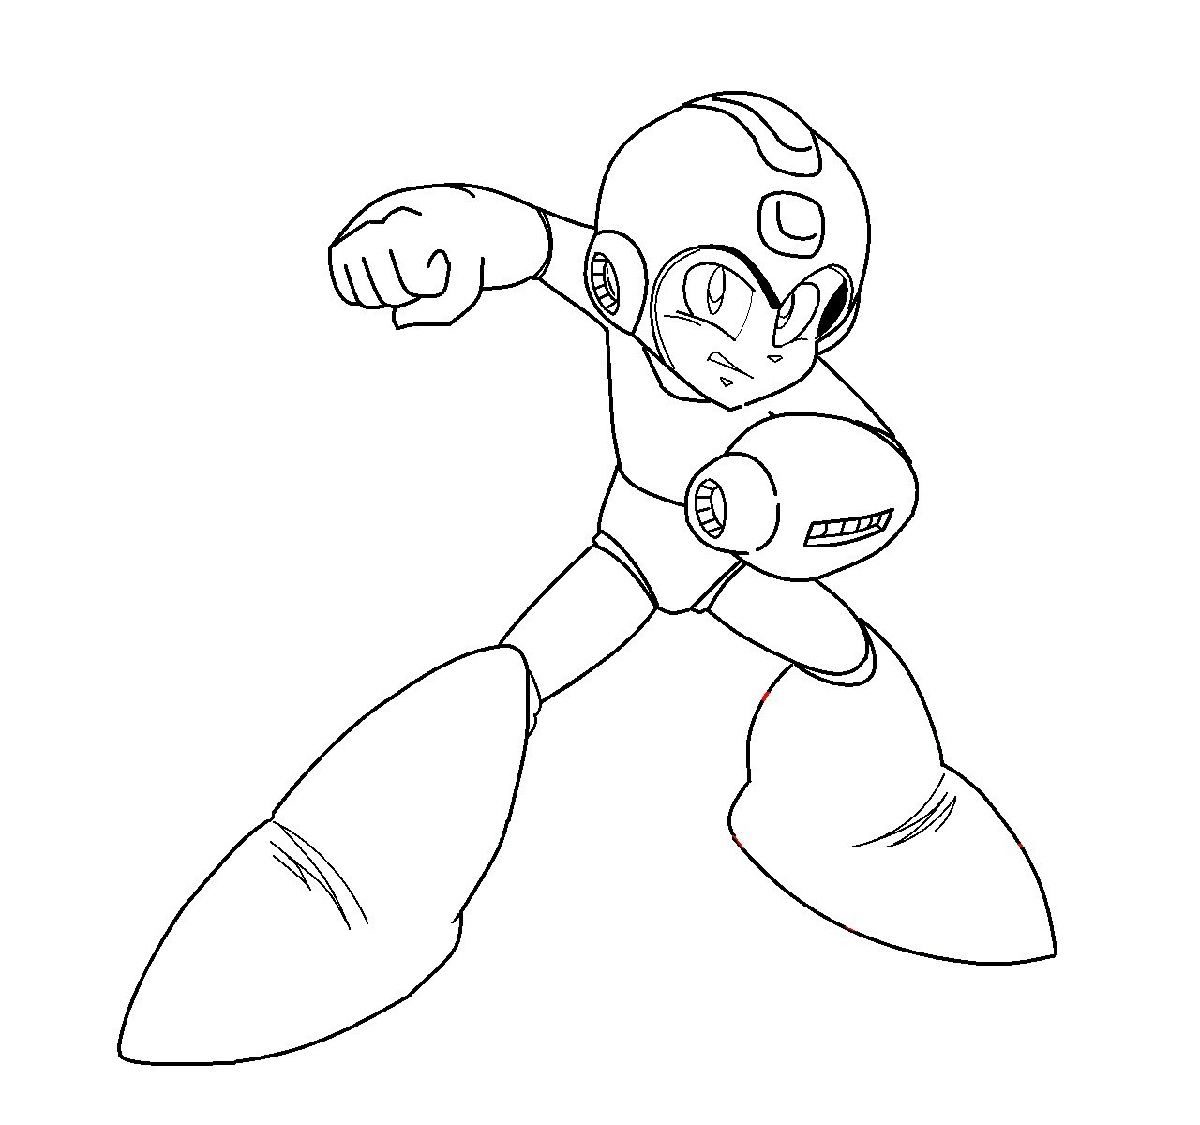 Mega Man Coloring Pages Printable